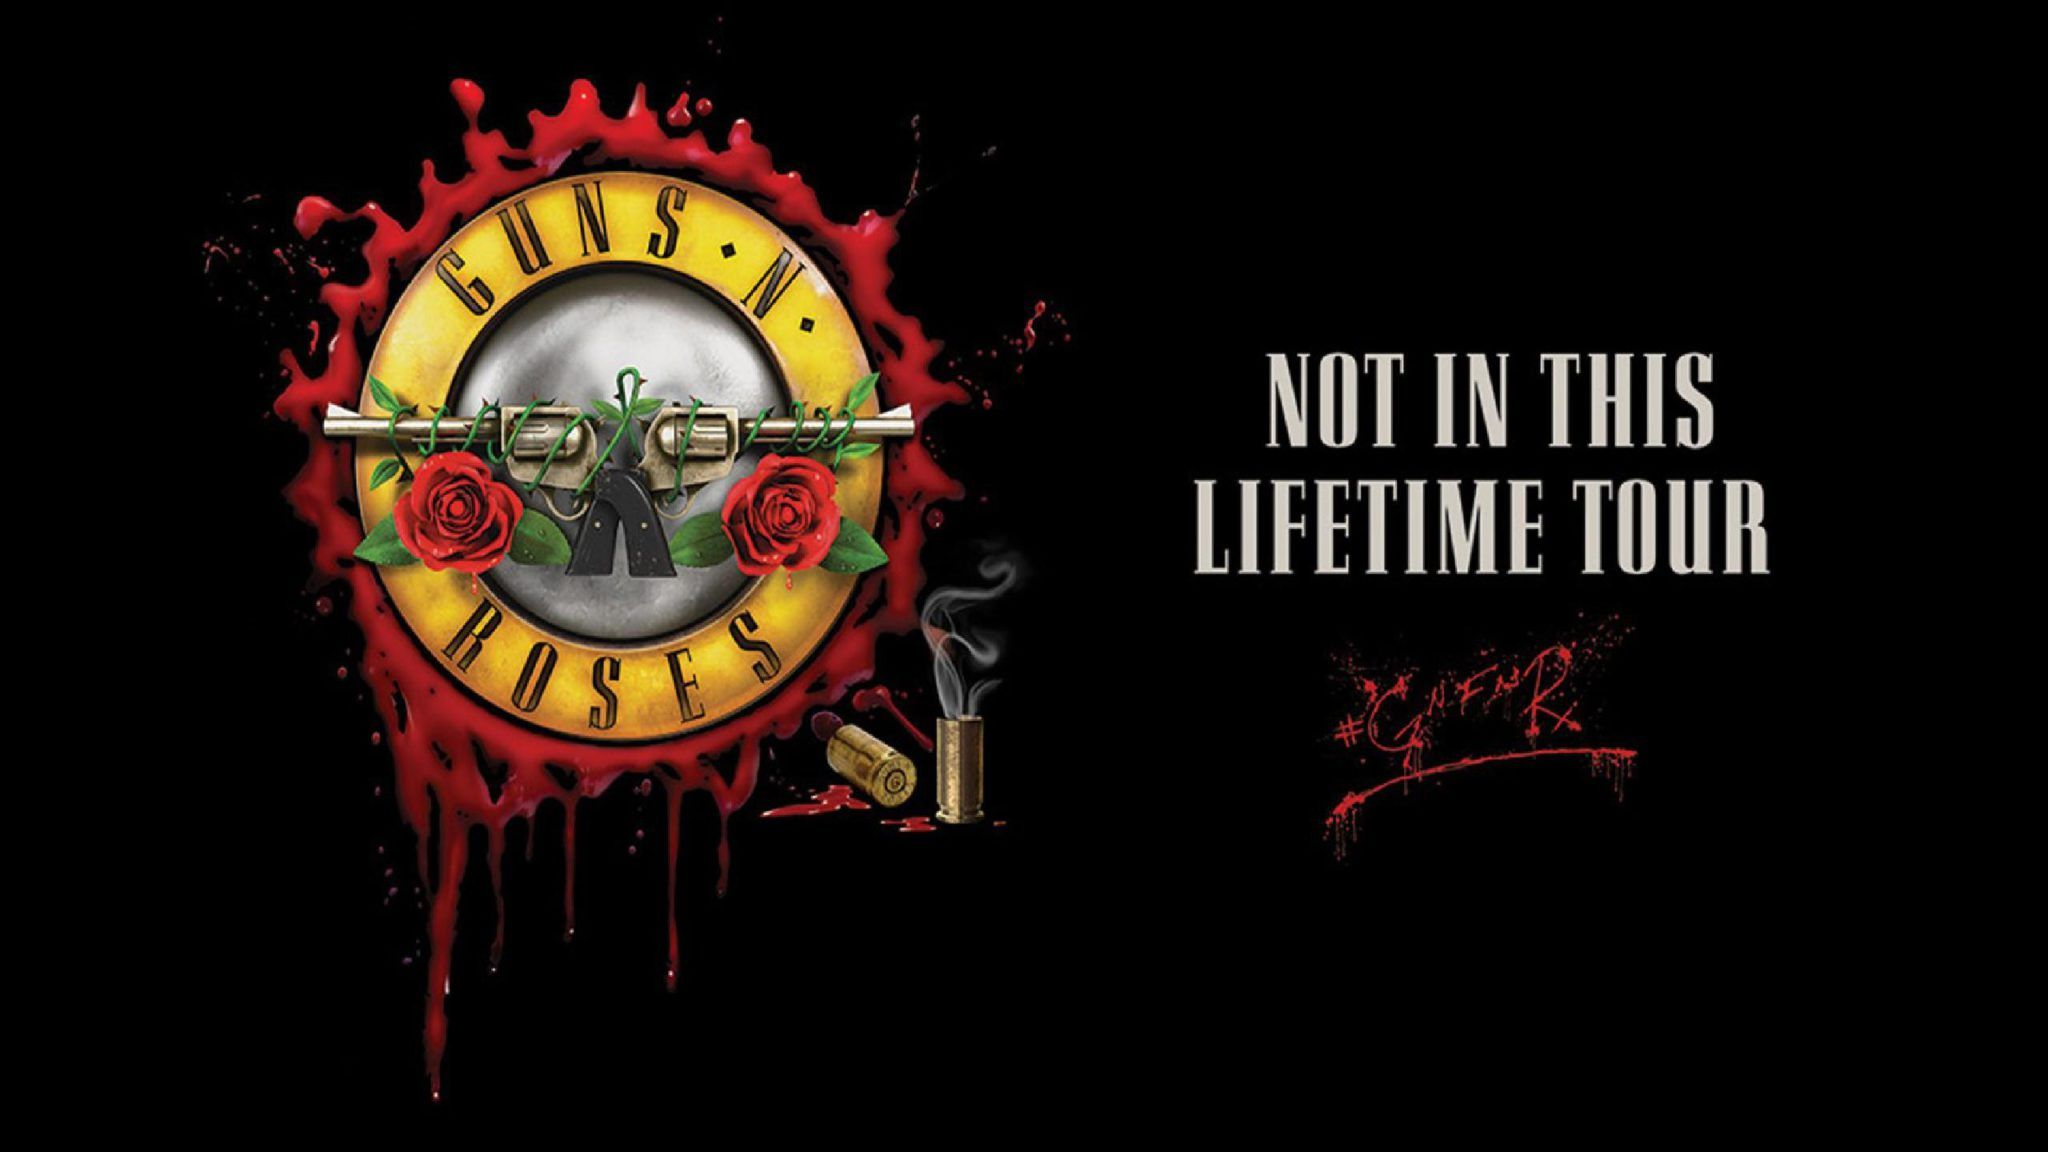 Guns N Roses Wallpapers Top Free Guns N Roses Backgrounds